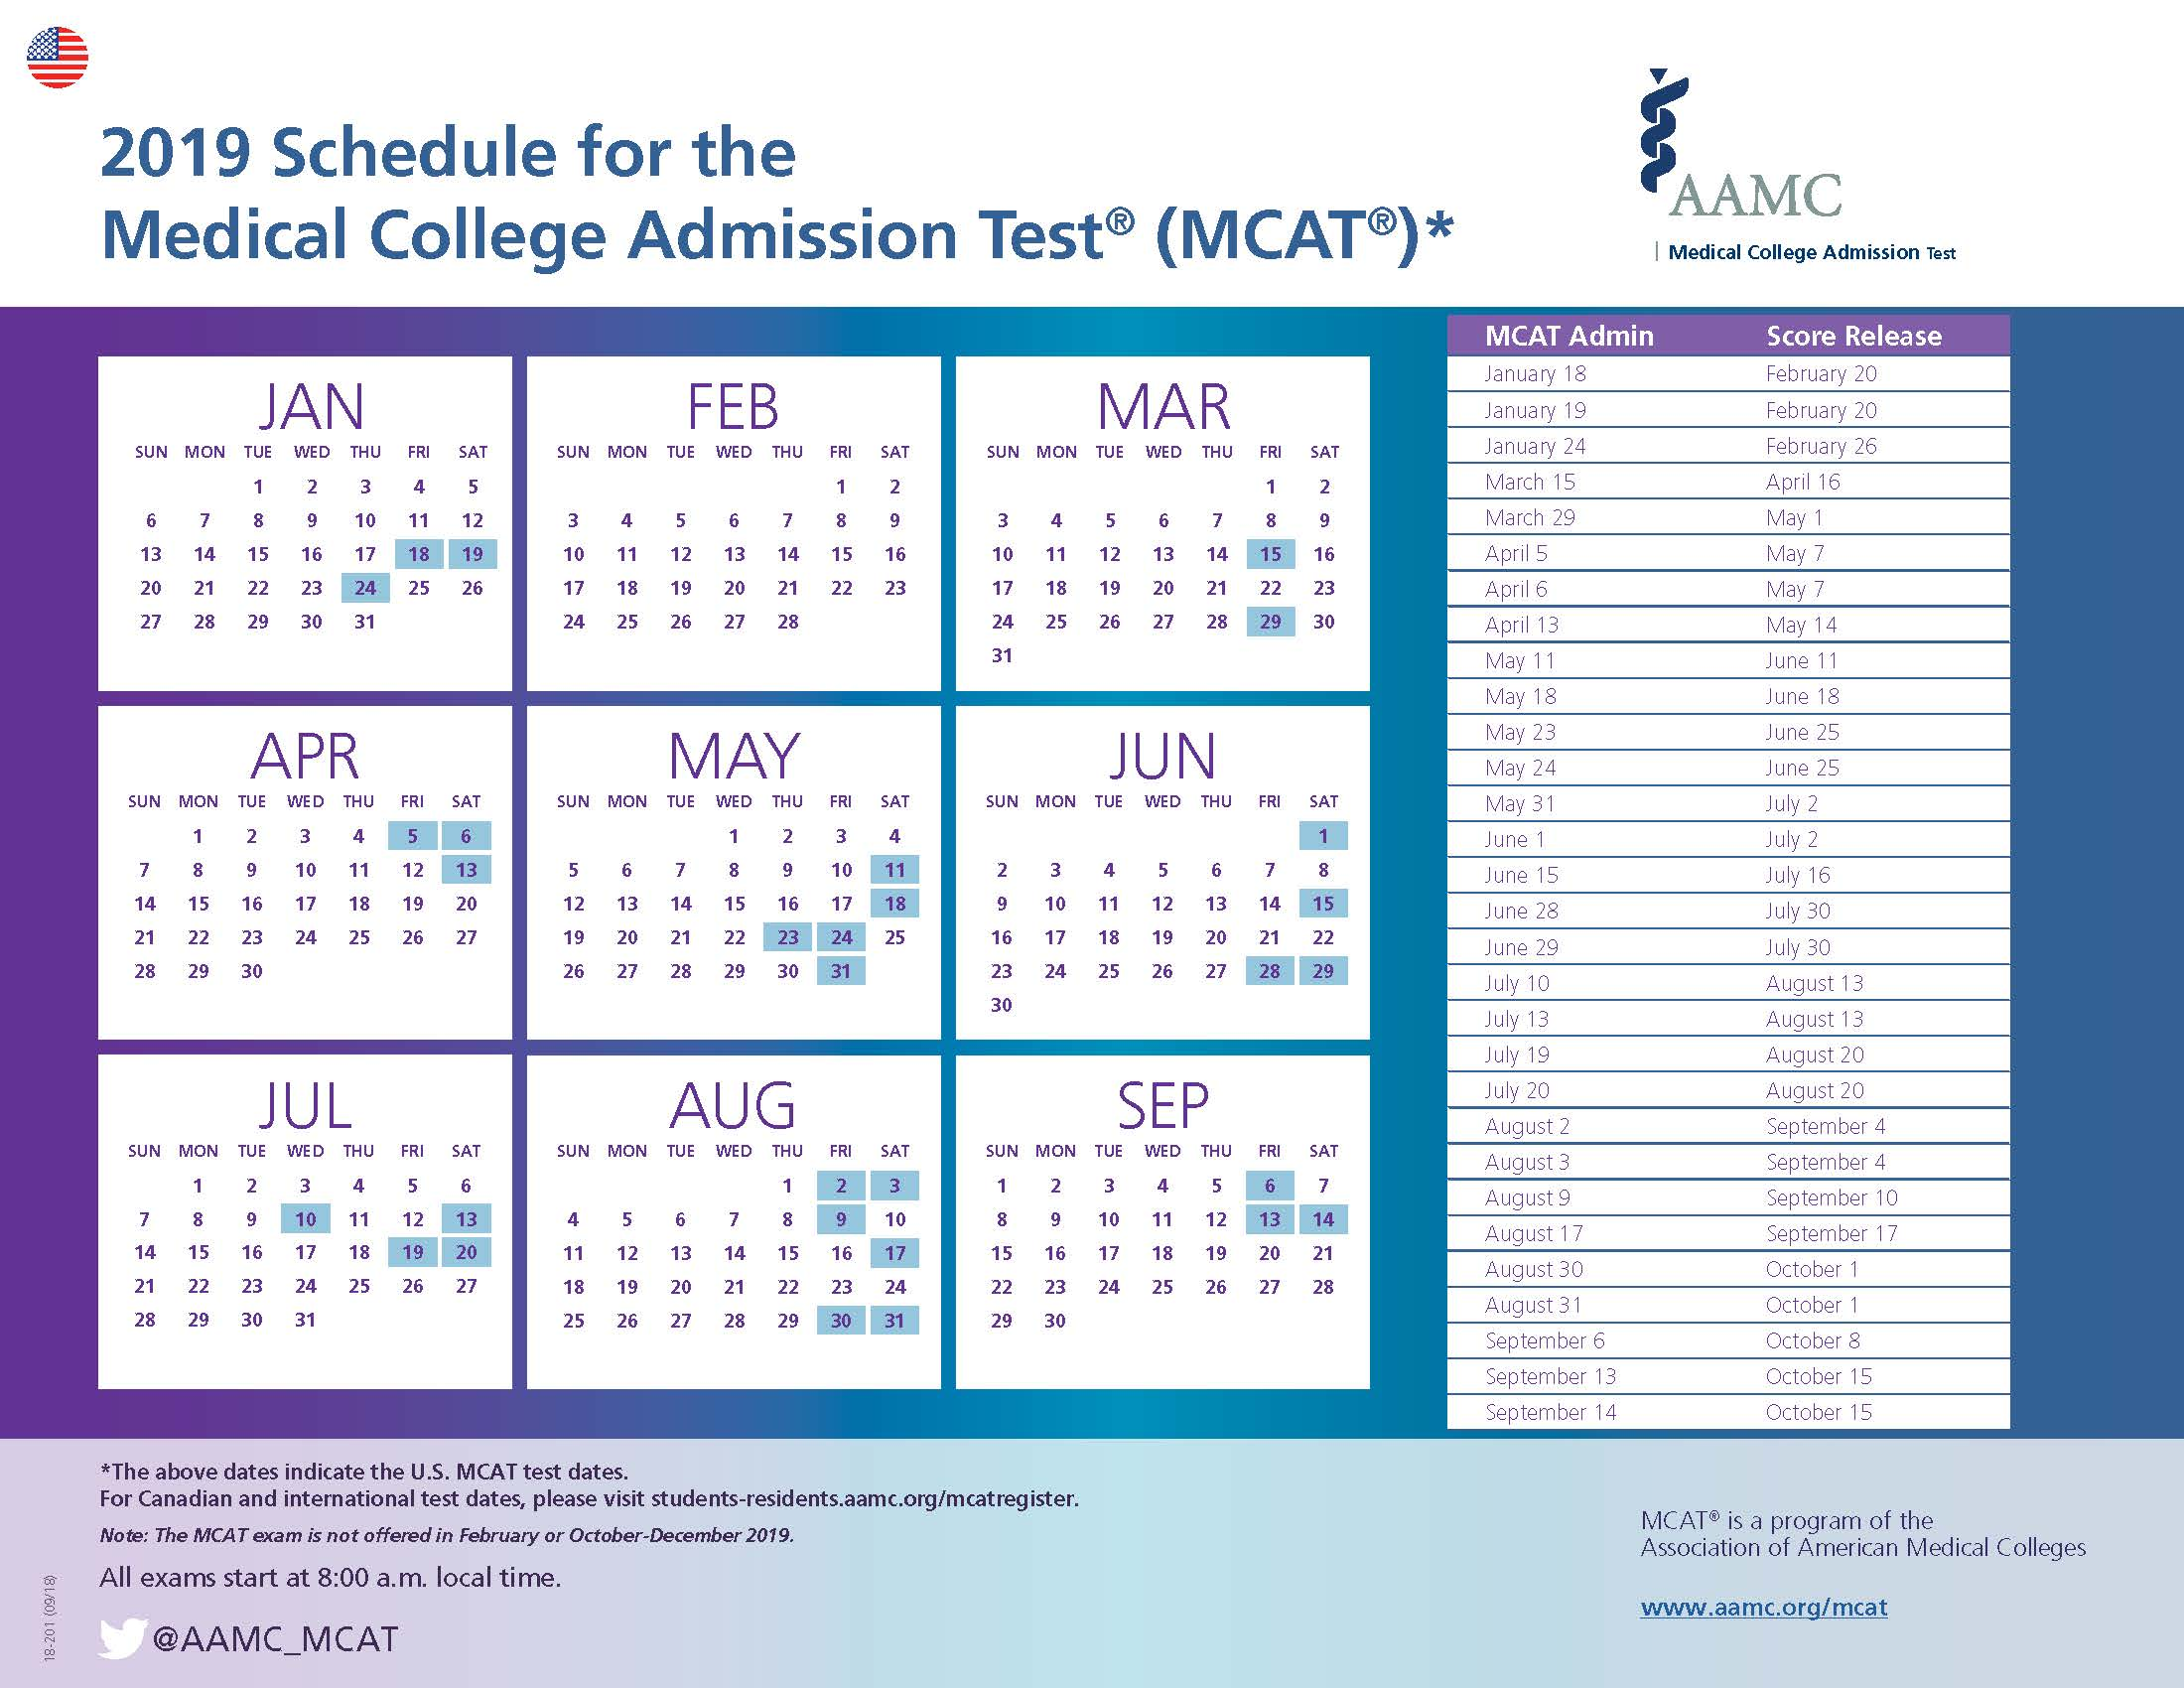 2019 MCAT Test Dates